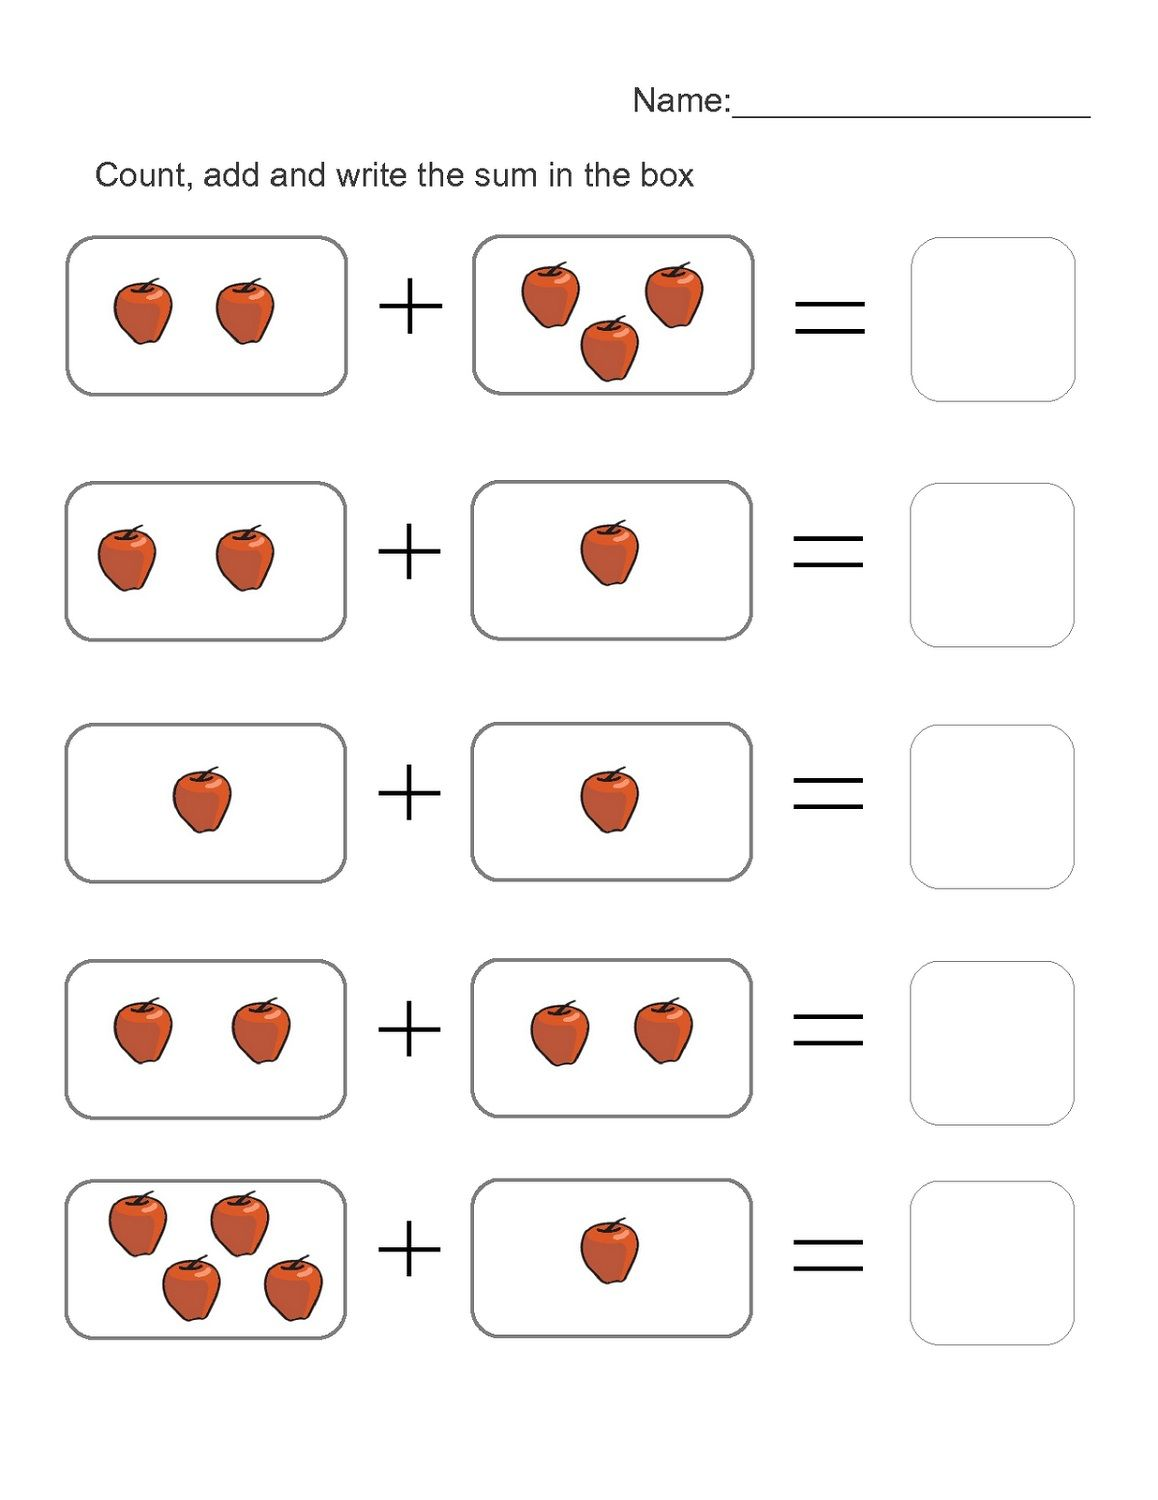 4 Year Old Worksheets Kids Learning Activity Math Addition Worksheets Kindergarten Worksheets Printable Preschool Math Worksheets